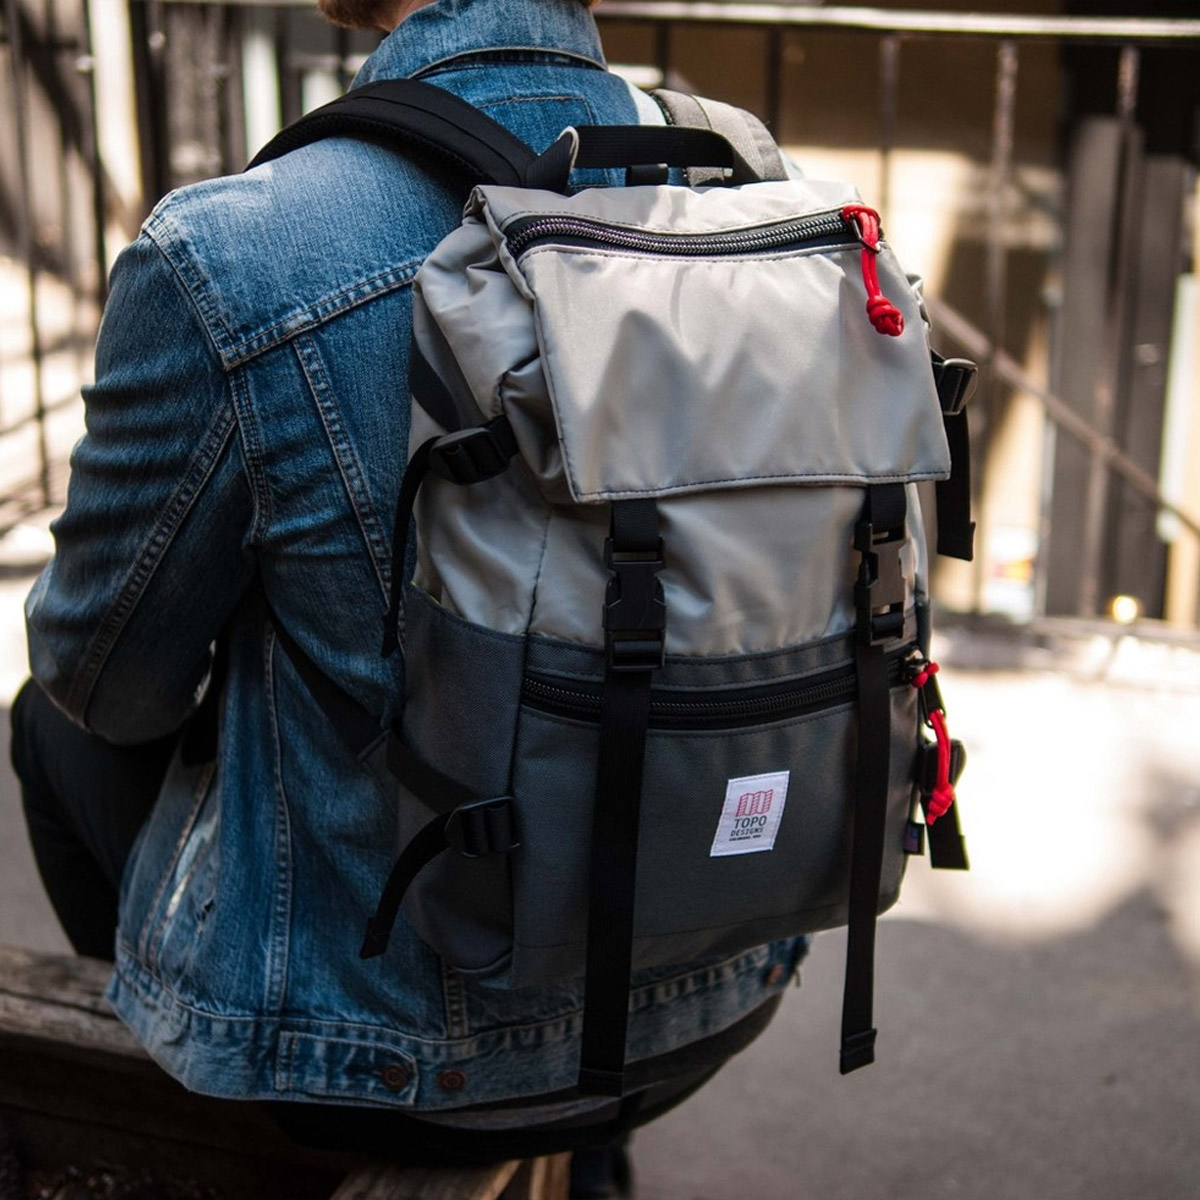 Topo Designs Rover Pack Silver/Charcoal, timeless backpack with great functionalities